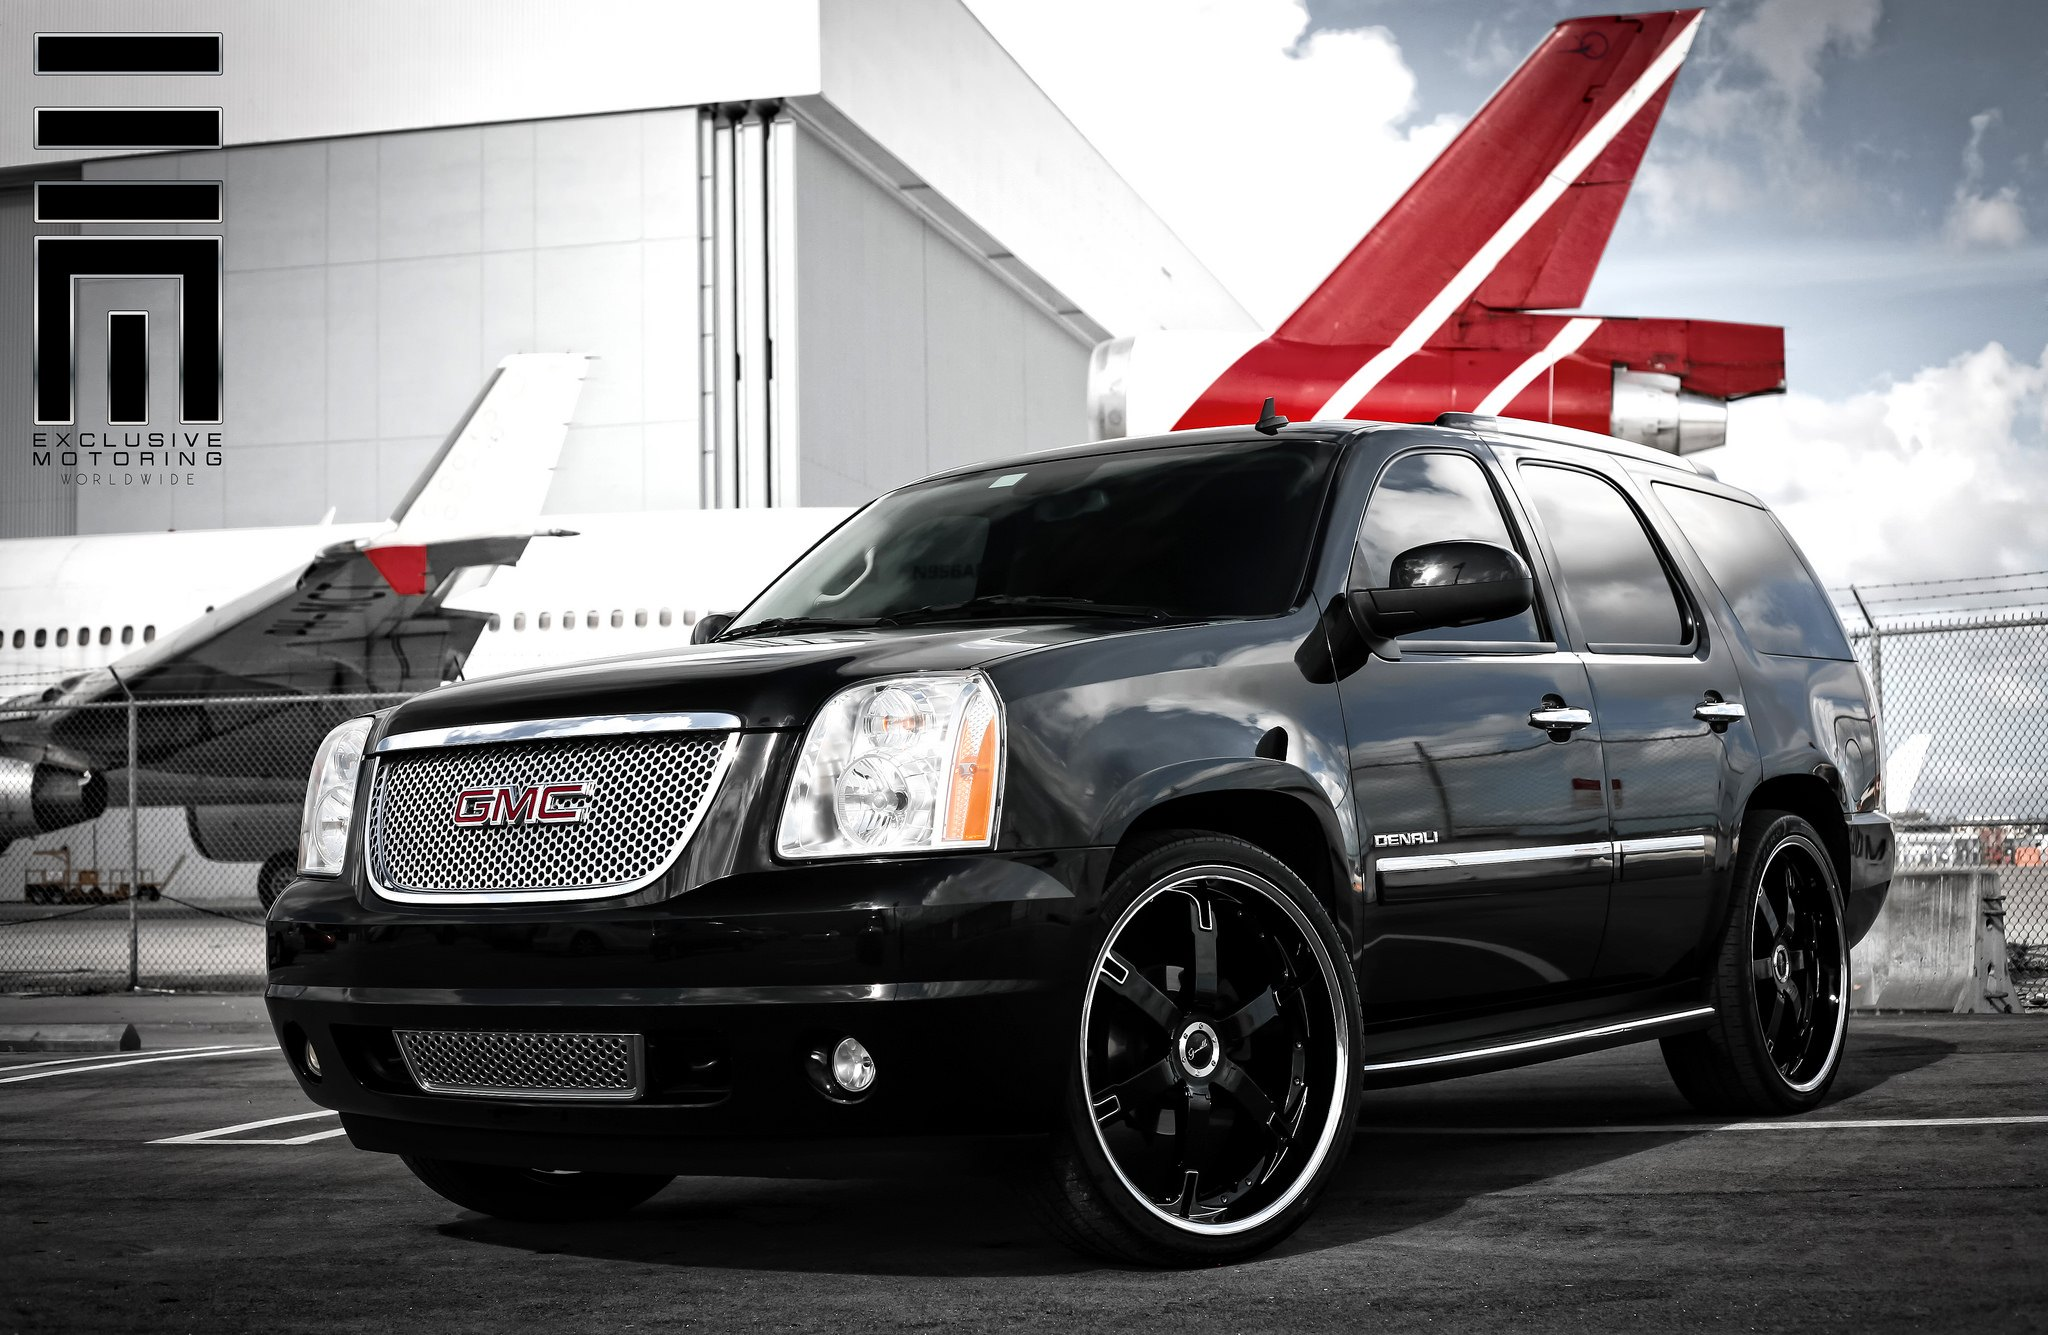 Gmc Yukon Denali On Black Custom Wheels By Exclusive Motoring Carid Com Gallery